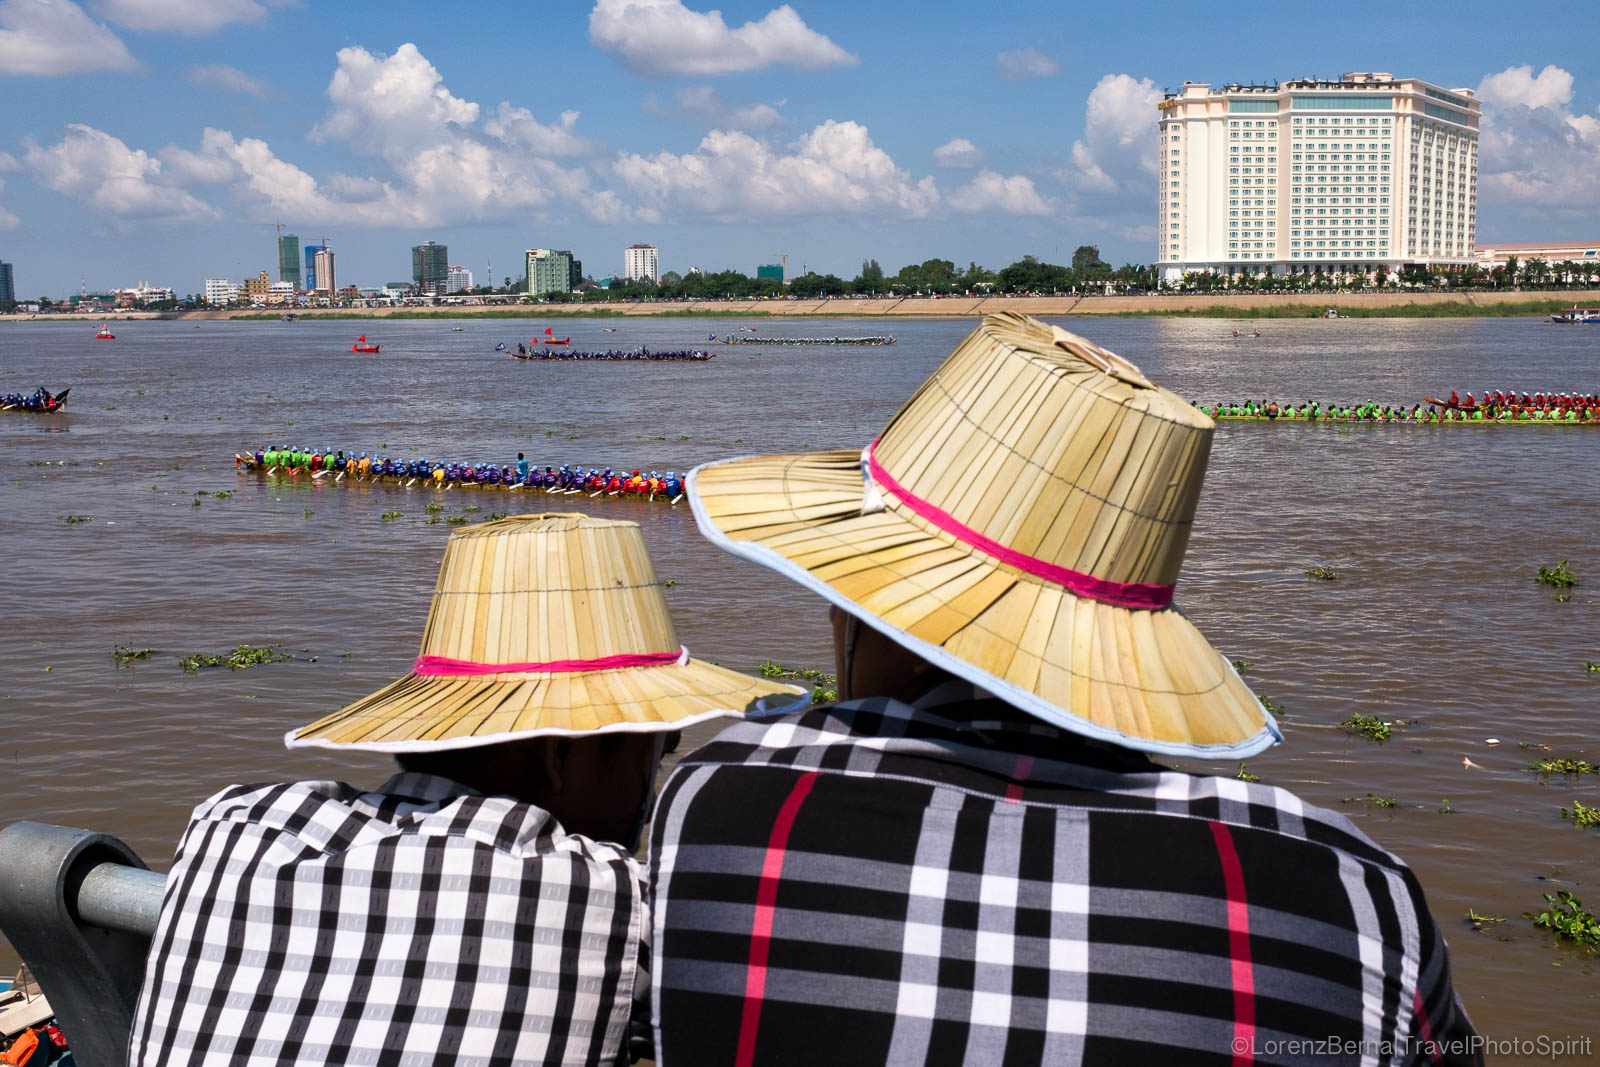 Two Cambodian men at the boat race in Phnom Penh, Cambodia